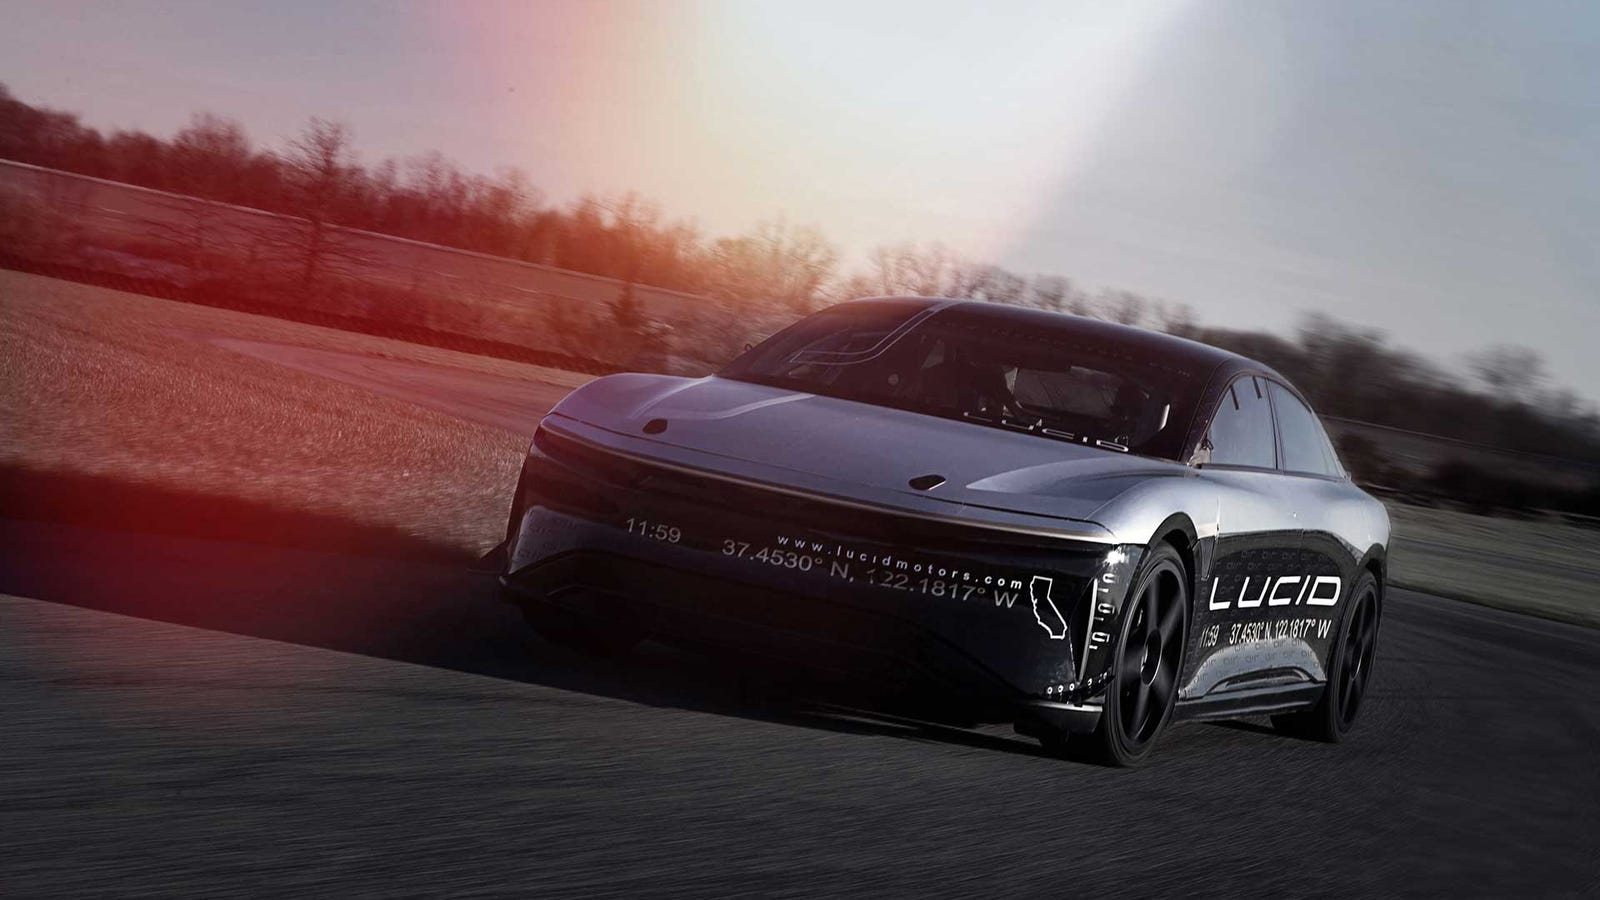 Here's A Video Of A Lucid Air Prototype Going 217 MPH